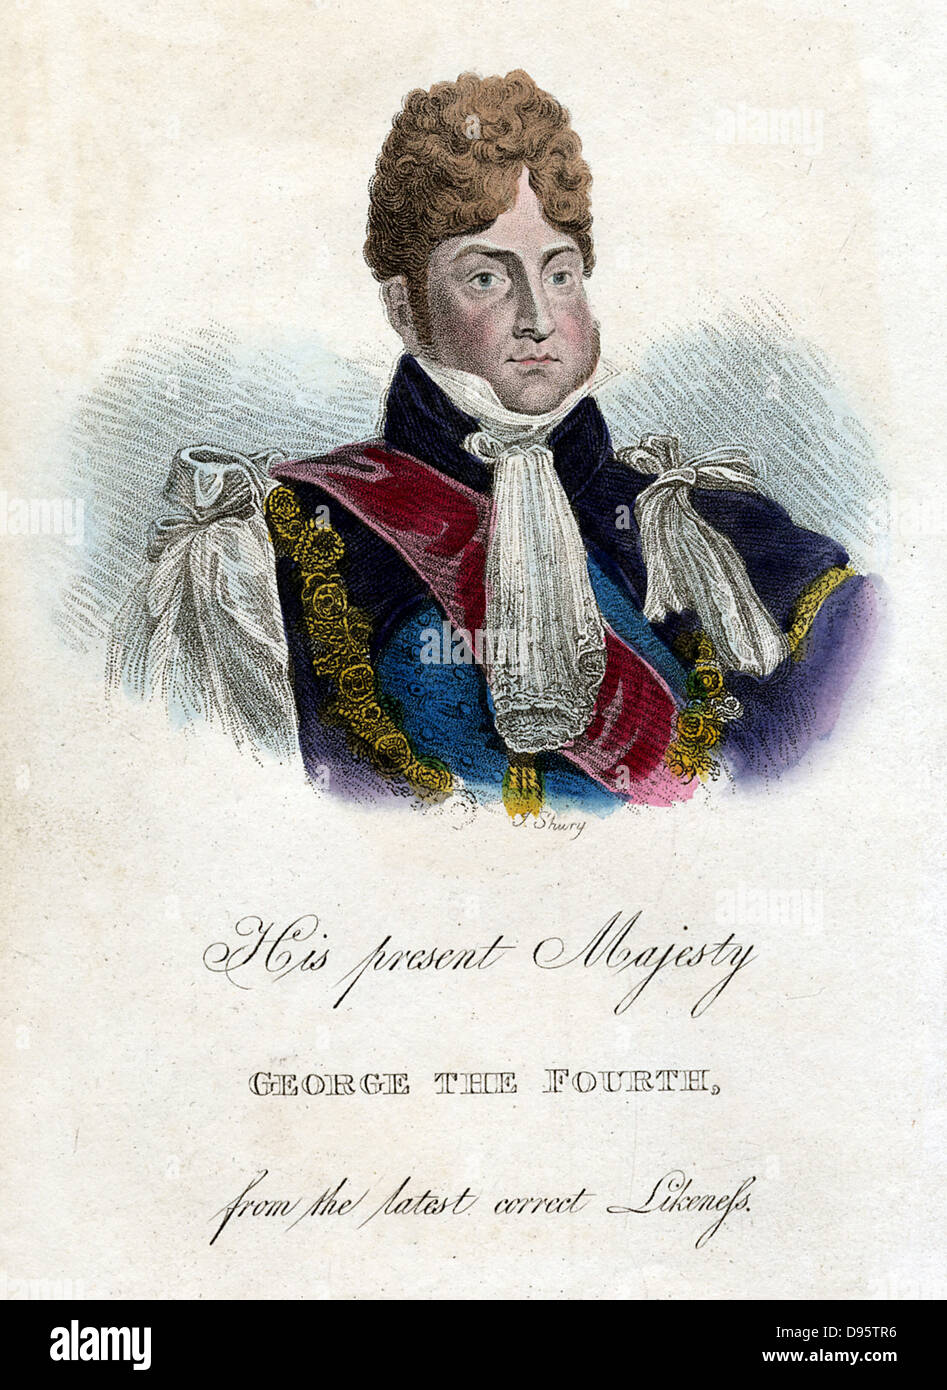 George IV (1762-1830) King of Great Britain and Ireland from 1820. Portrait from 'Memoirs of Caroline, Queen - Stock Image